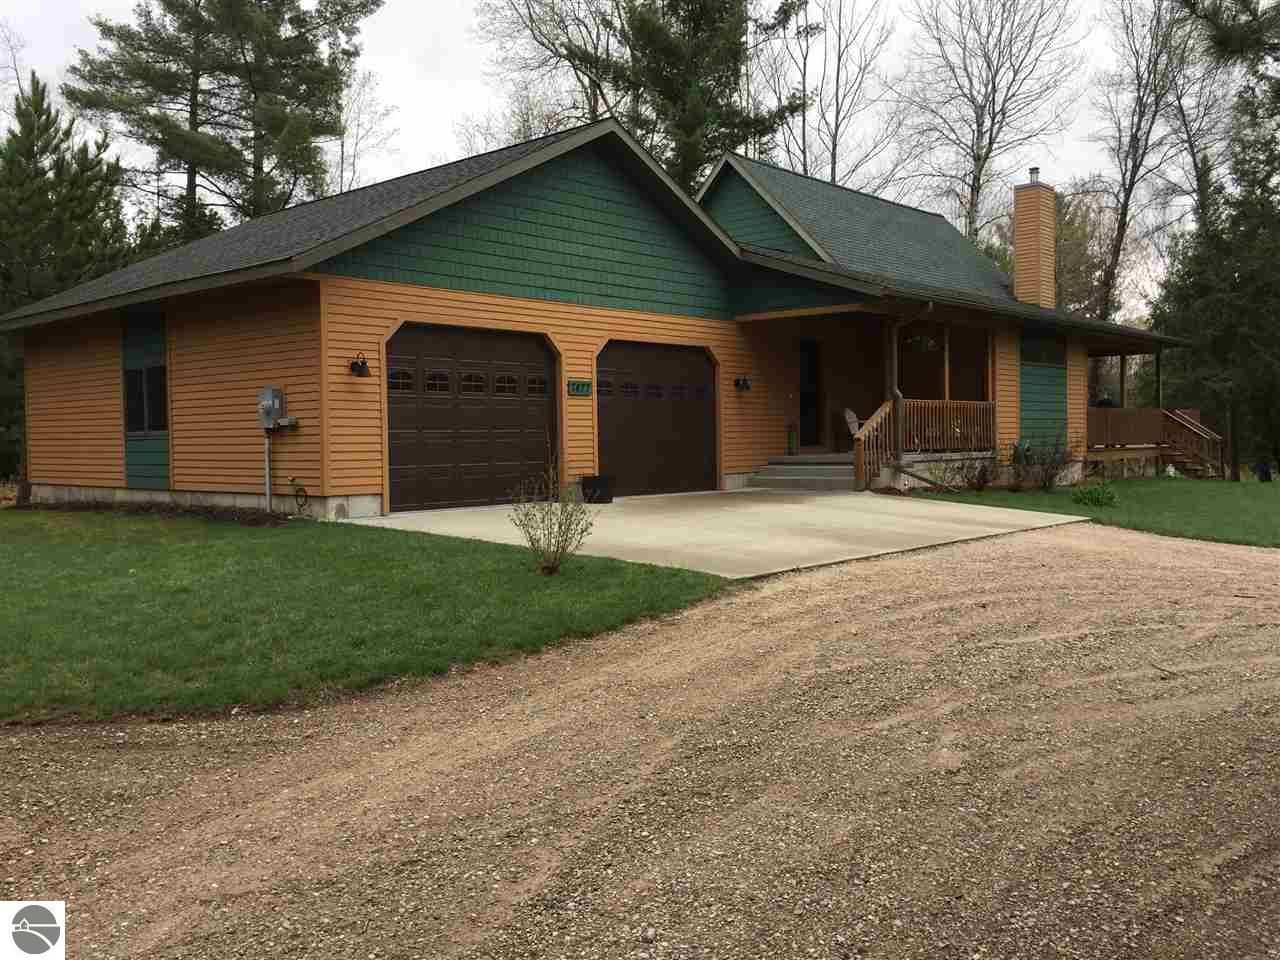 7477 W Blue Rd, Lake City, MI 49651 | Trulia